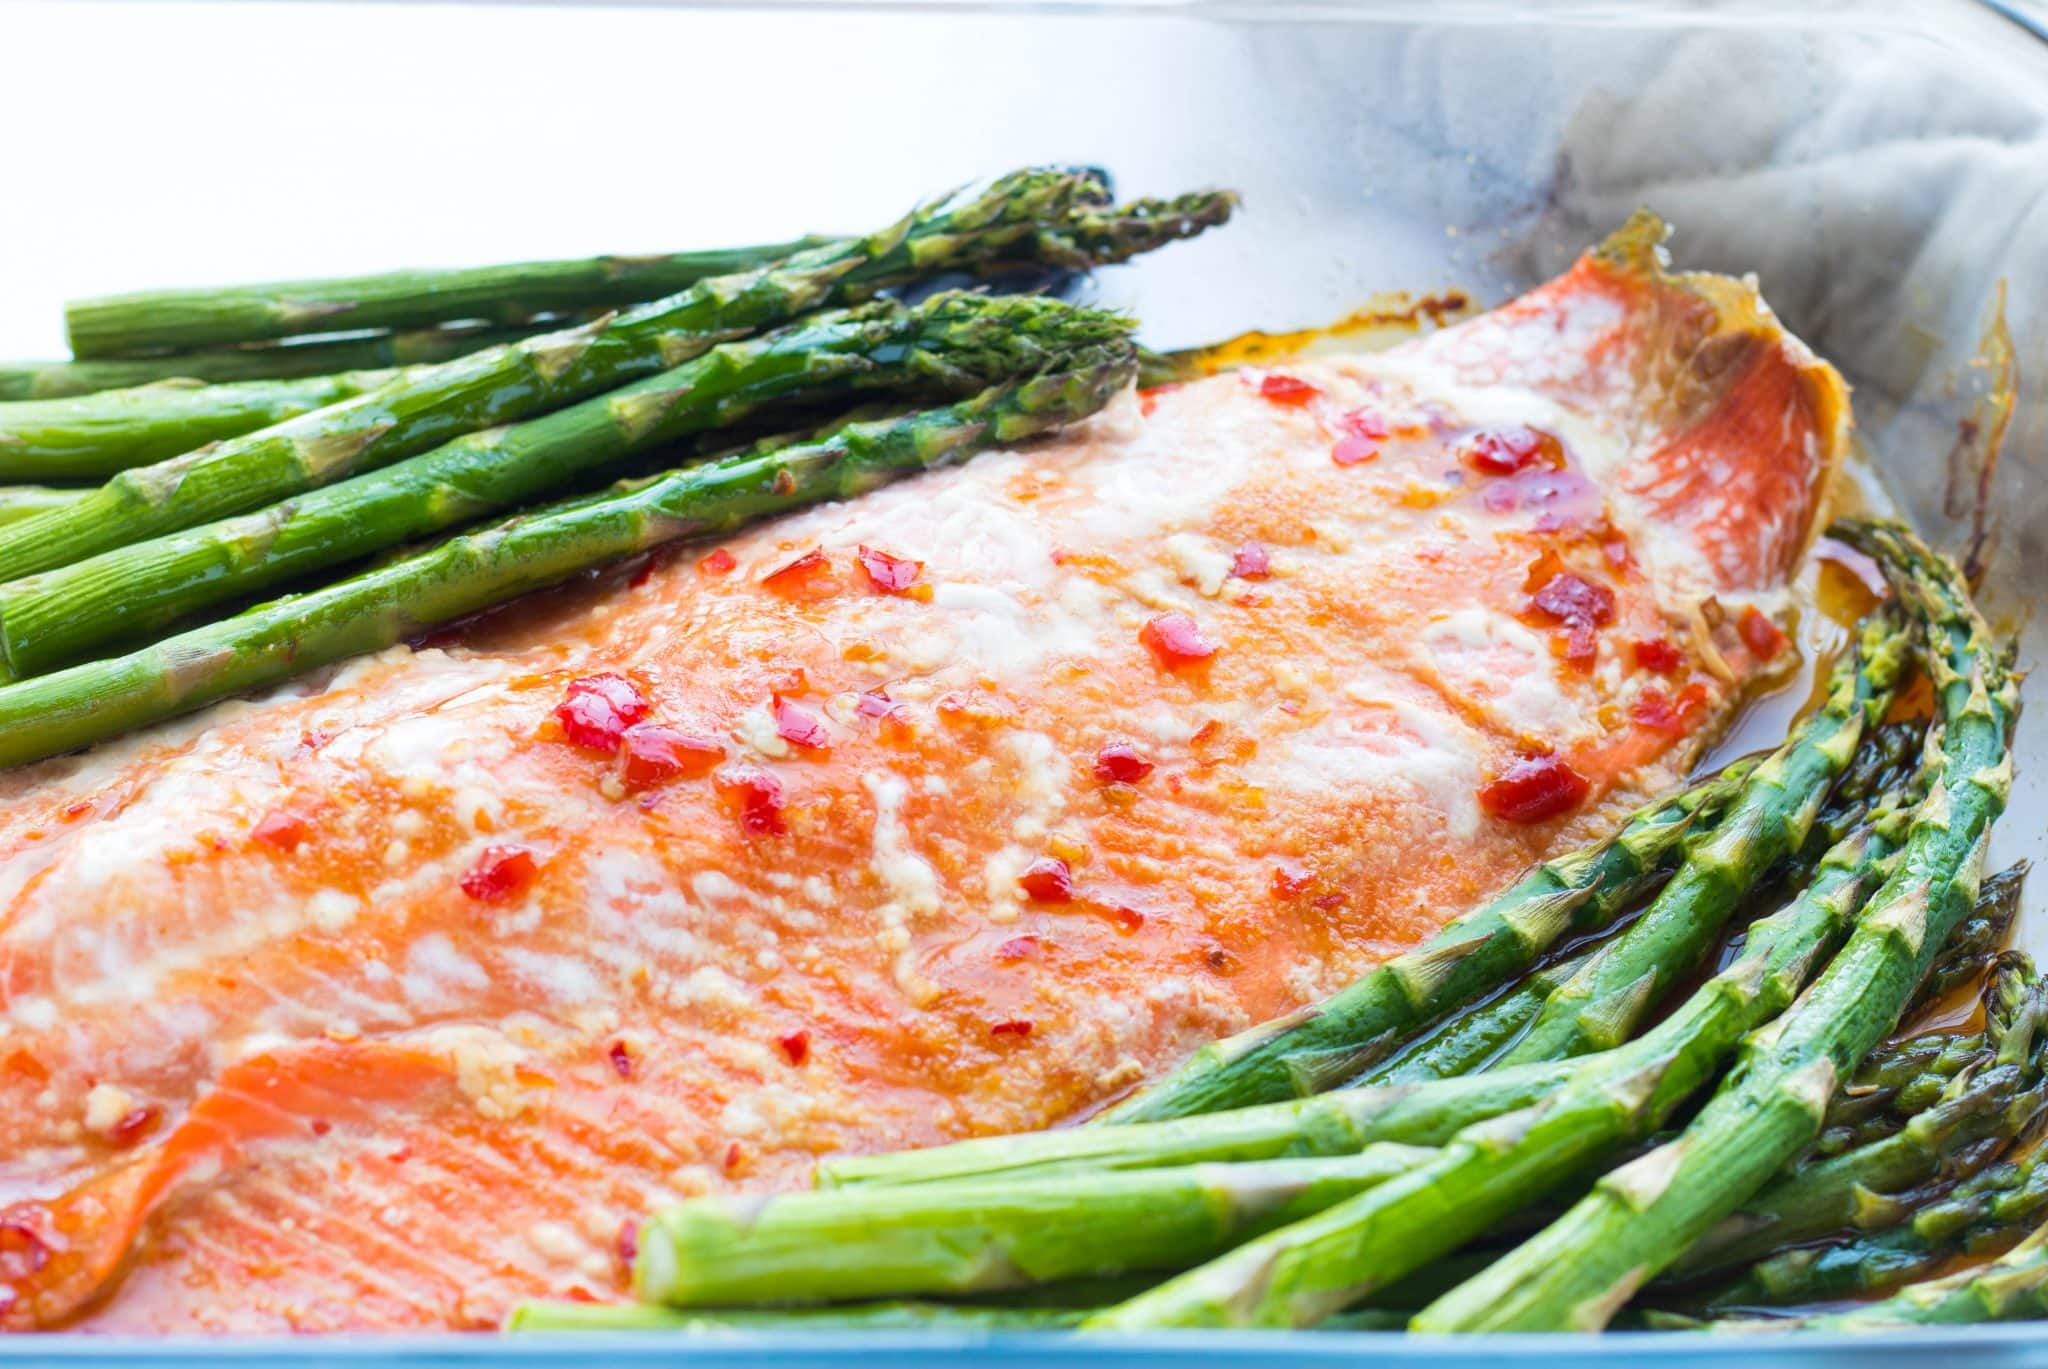 Vacation Meal Plan- 7 Easy Dinners with Five Ingredients Each